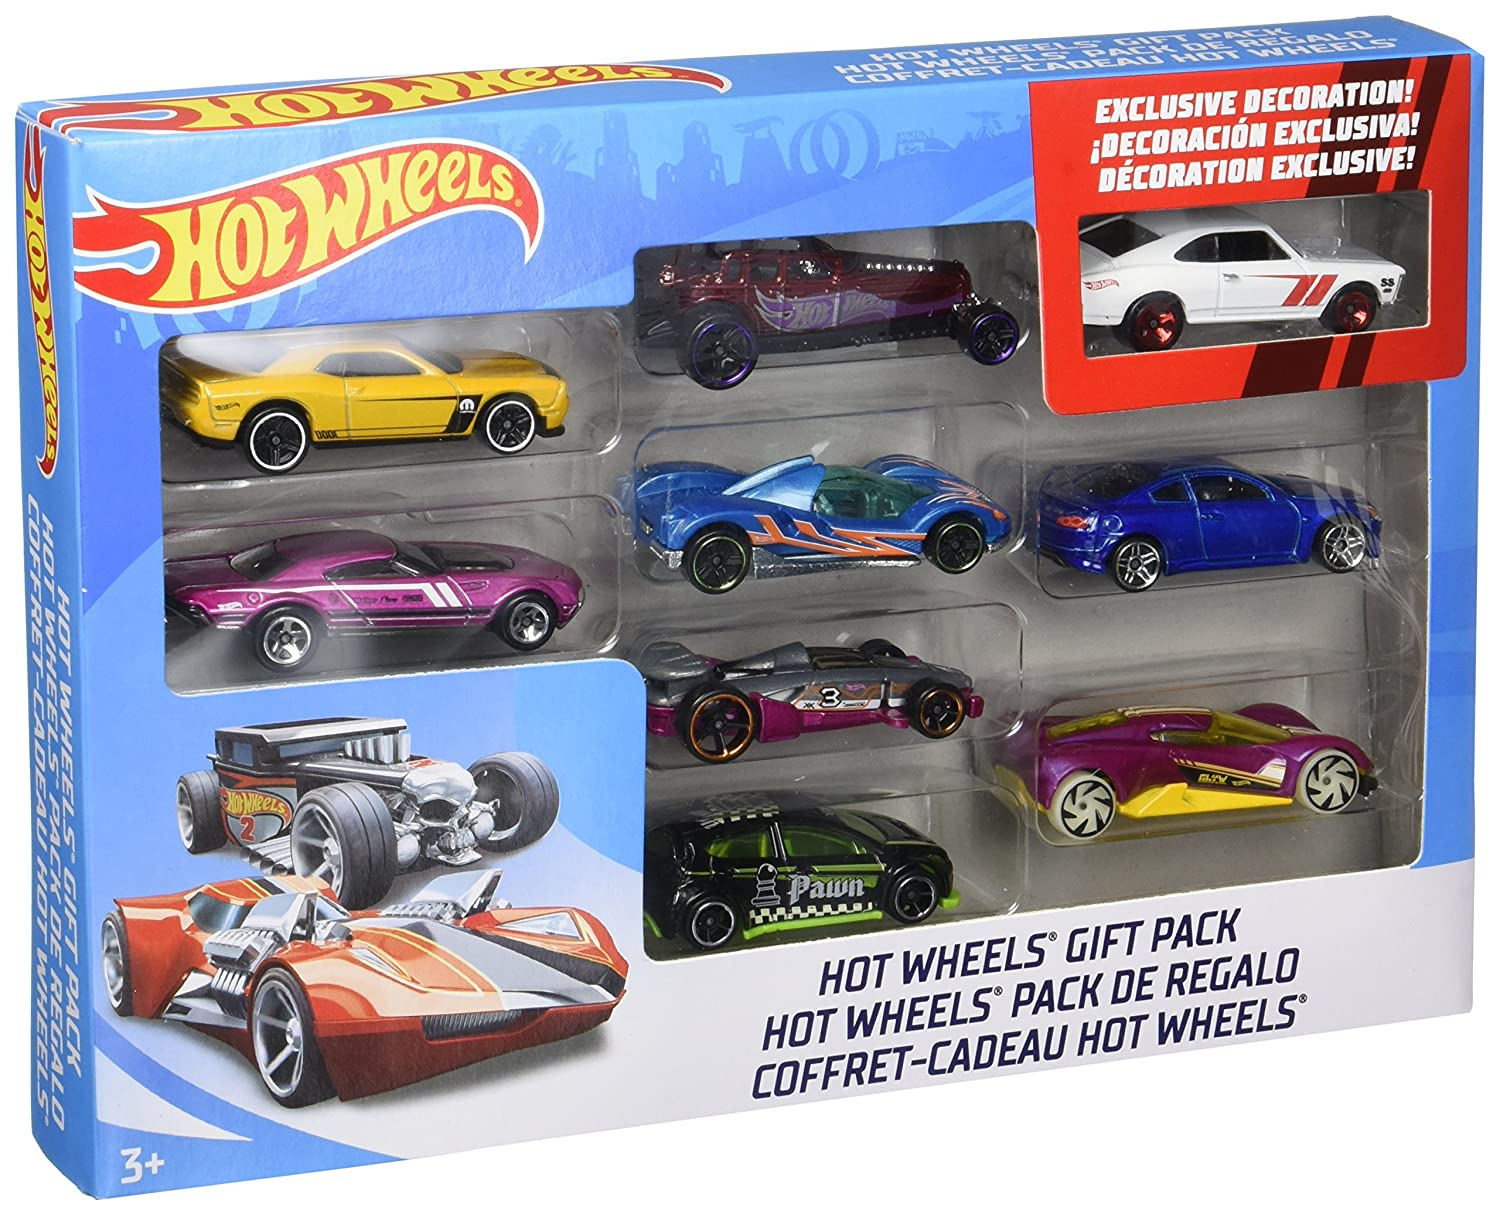 image of assorted Hot Wheel mini trucks in a box